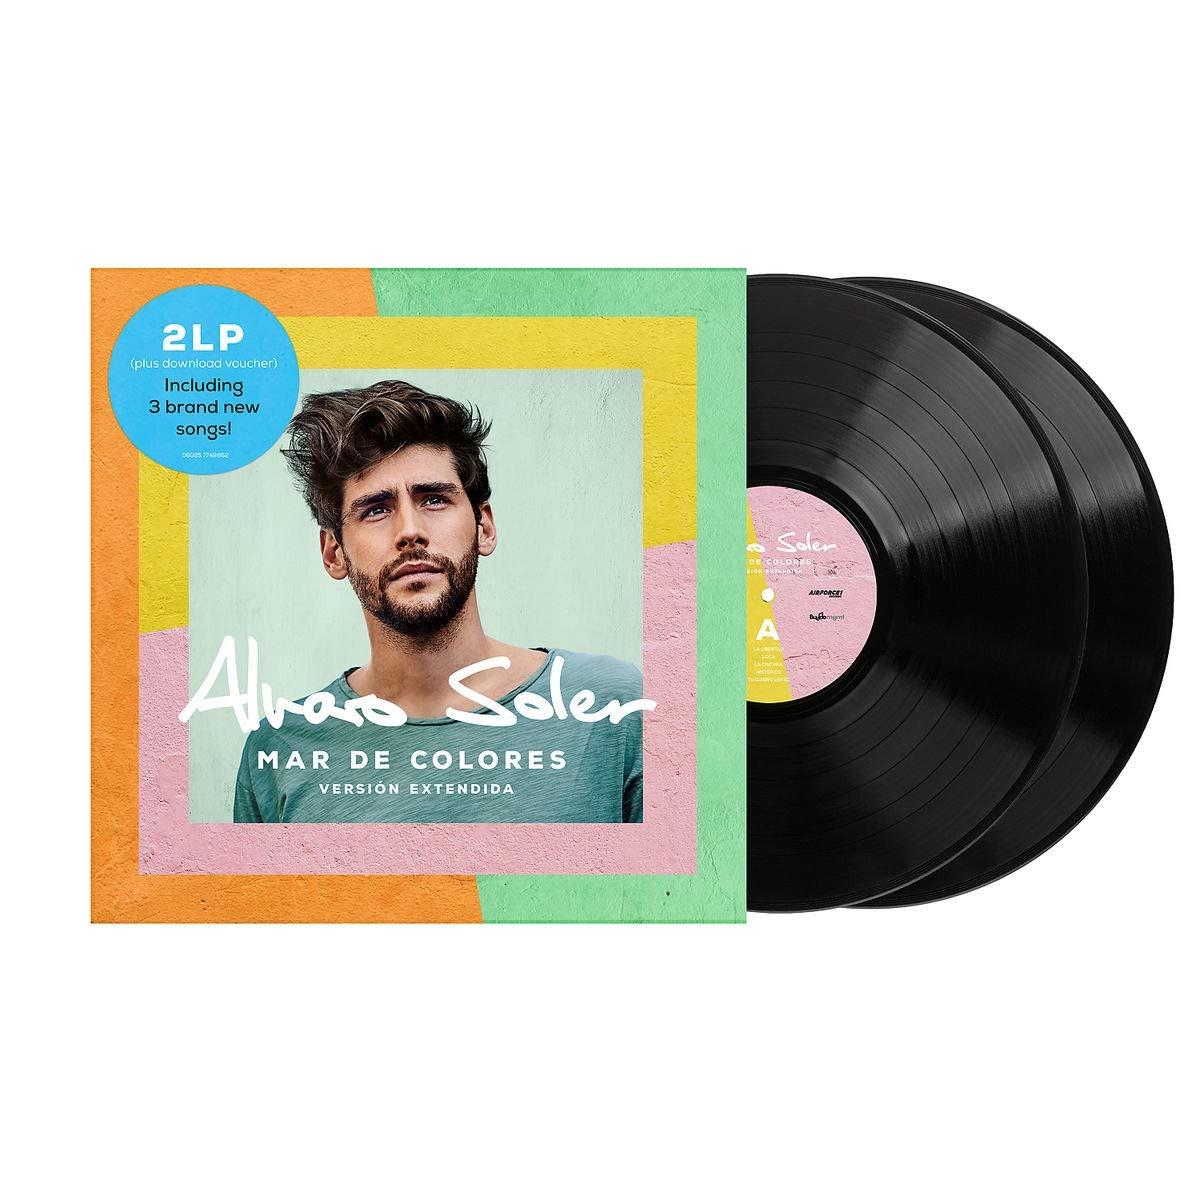 CD Shop - ALVARO SOLER MAR DE COLORES